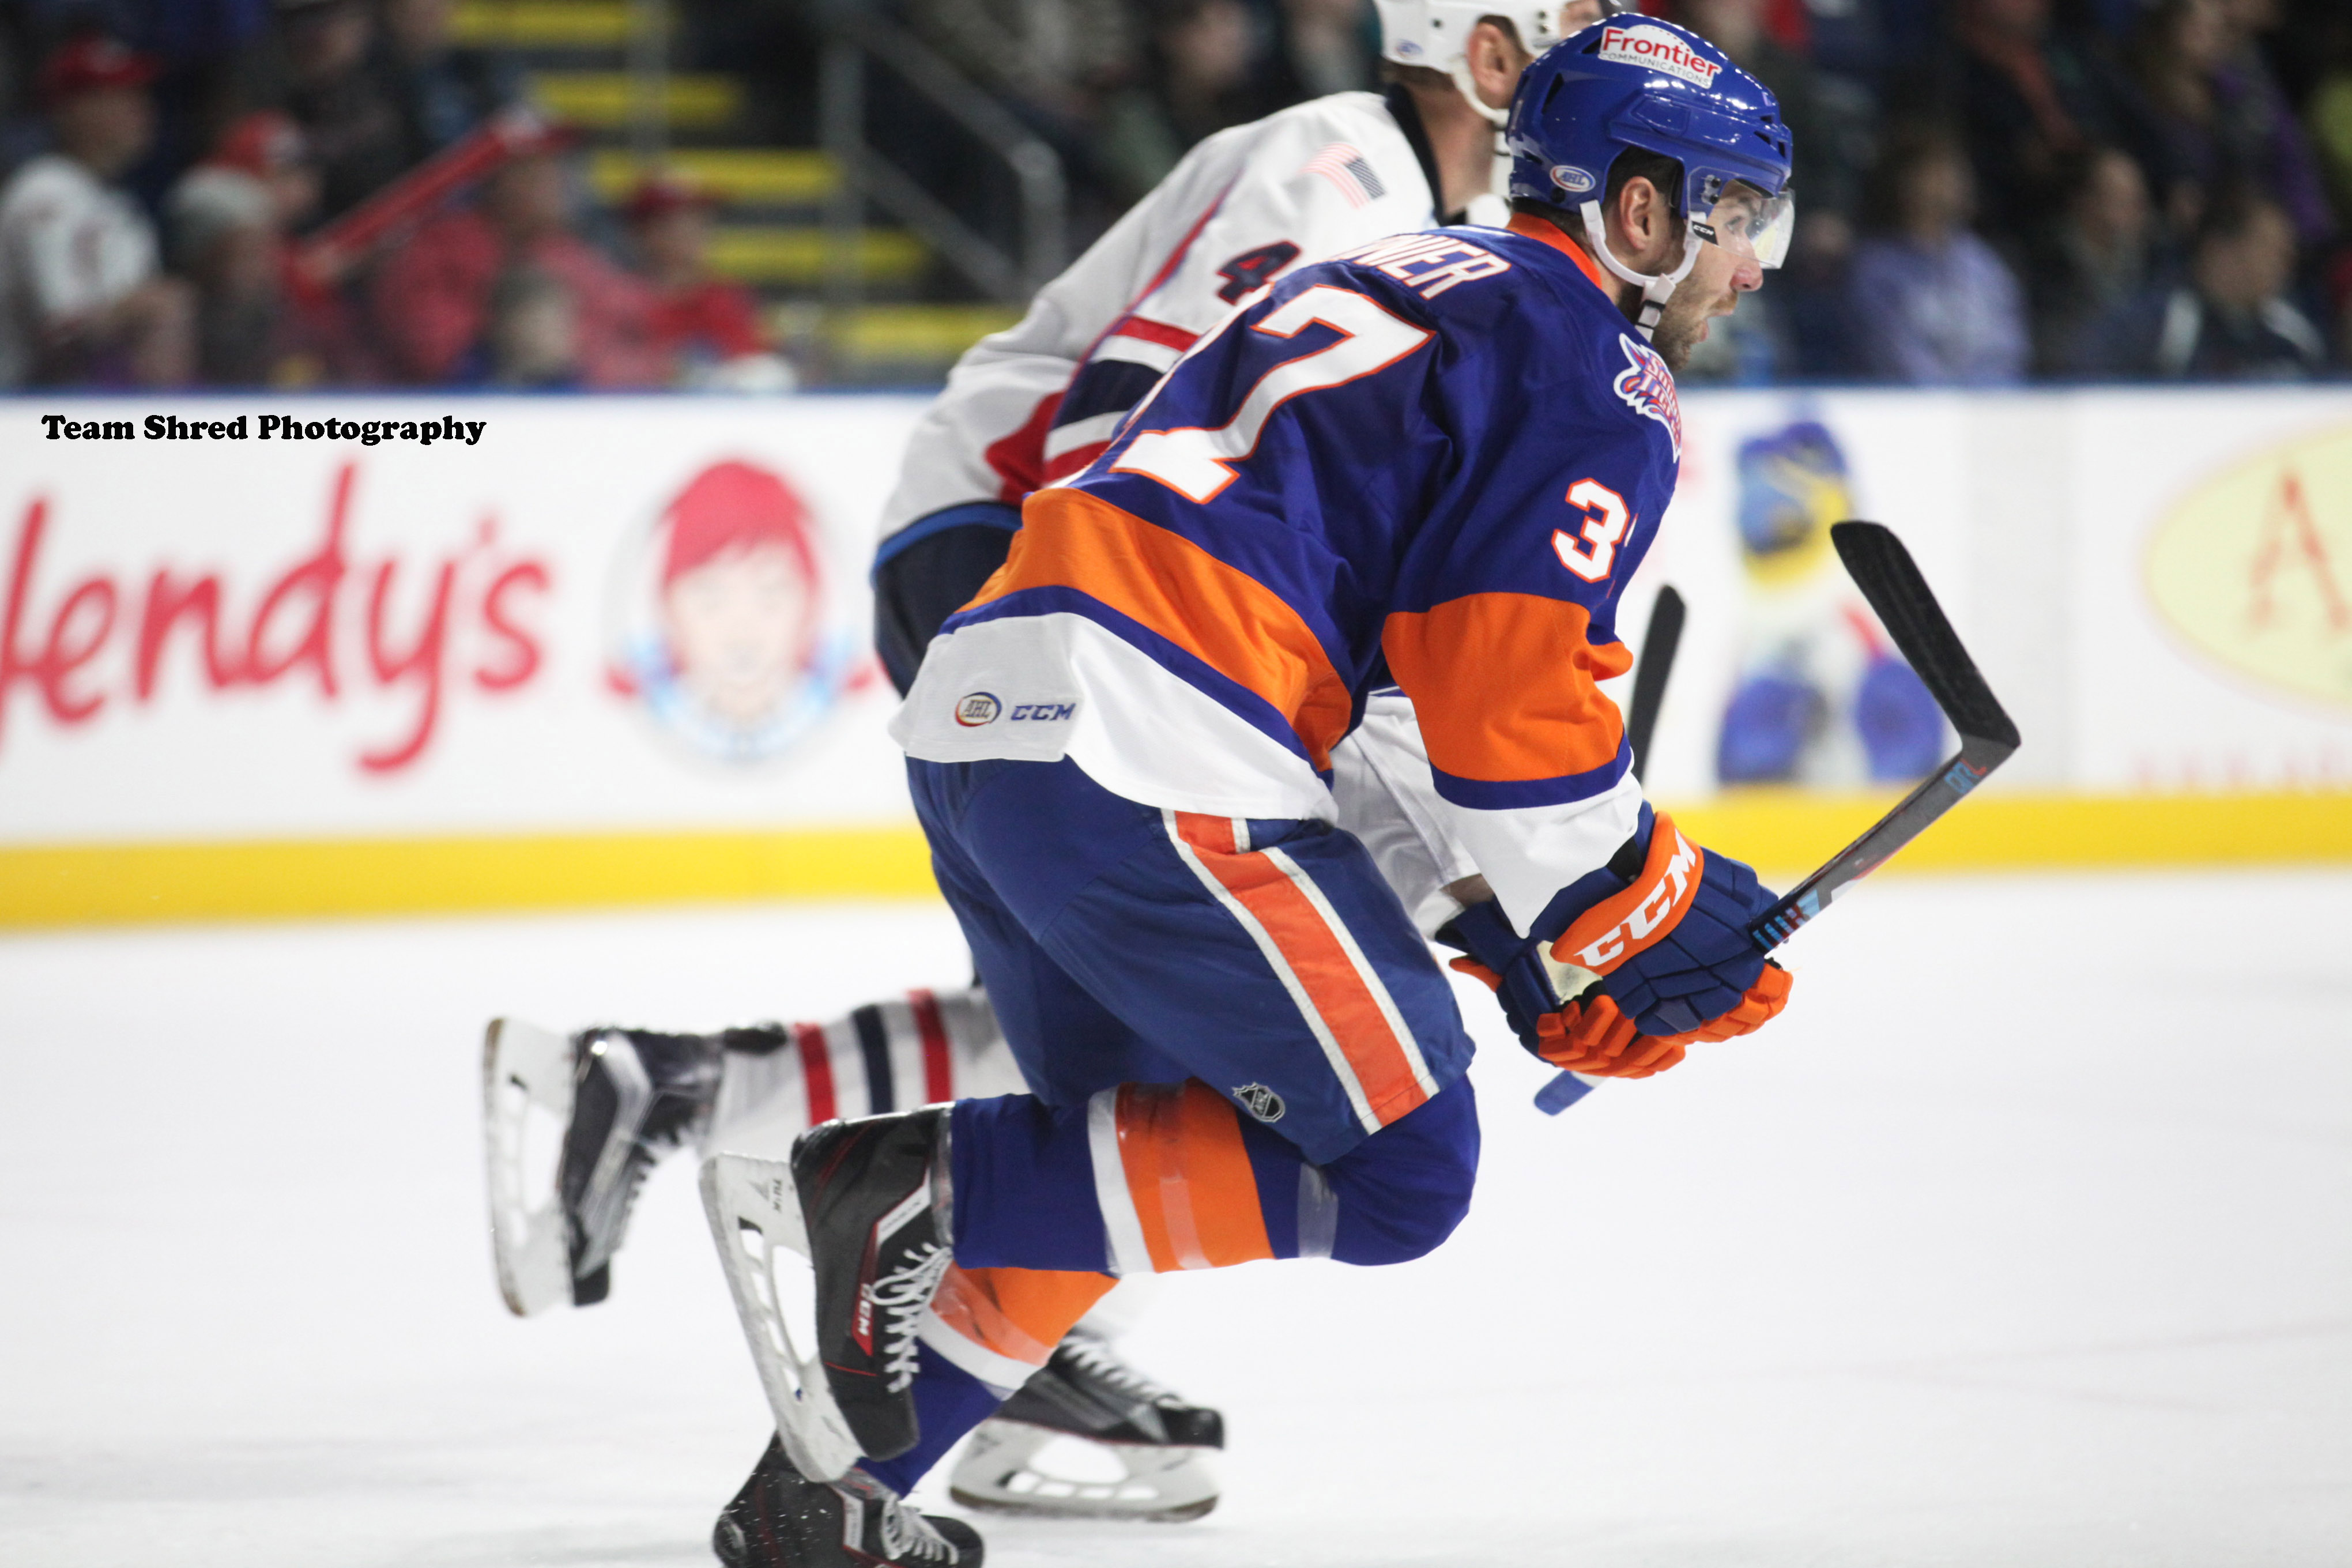 b99bfd3d9 Heading into his 13th season, veteran, former 1st rounder, right wing Steve  Bernier(37) signs a new two-year, two-way deal to stay in New York Islanders'  ...